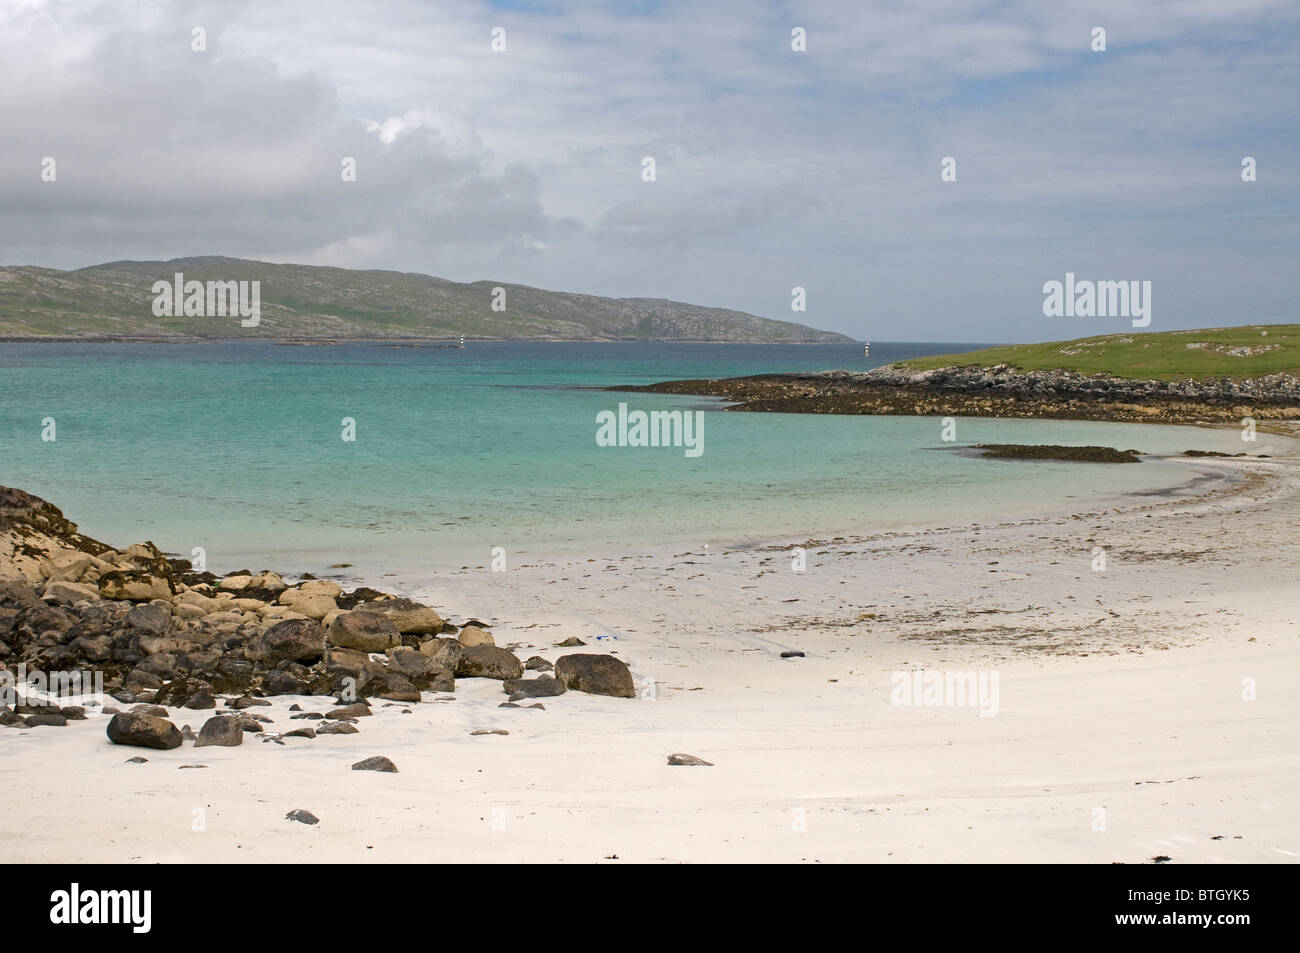 The dunes at Eilean Caragraich, Uidh, Vatersay with view across to Isle of  Barra.  SCO 6568 - Stock Image